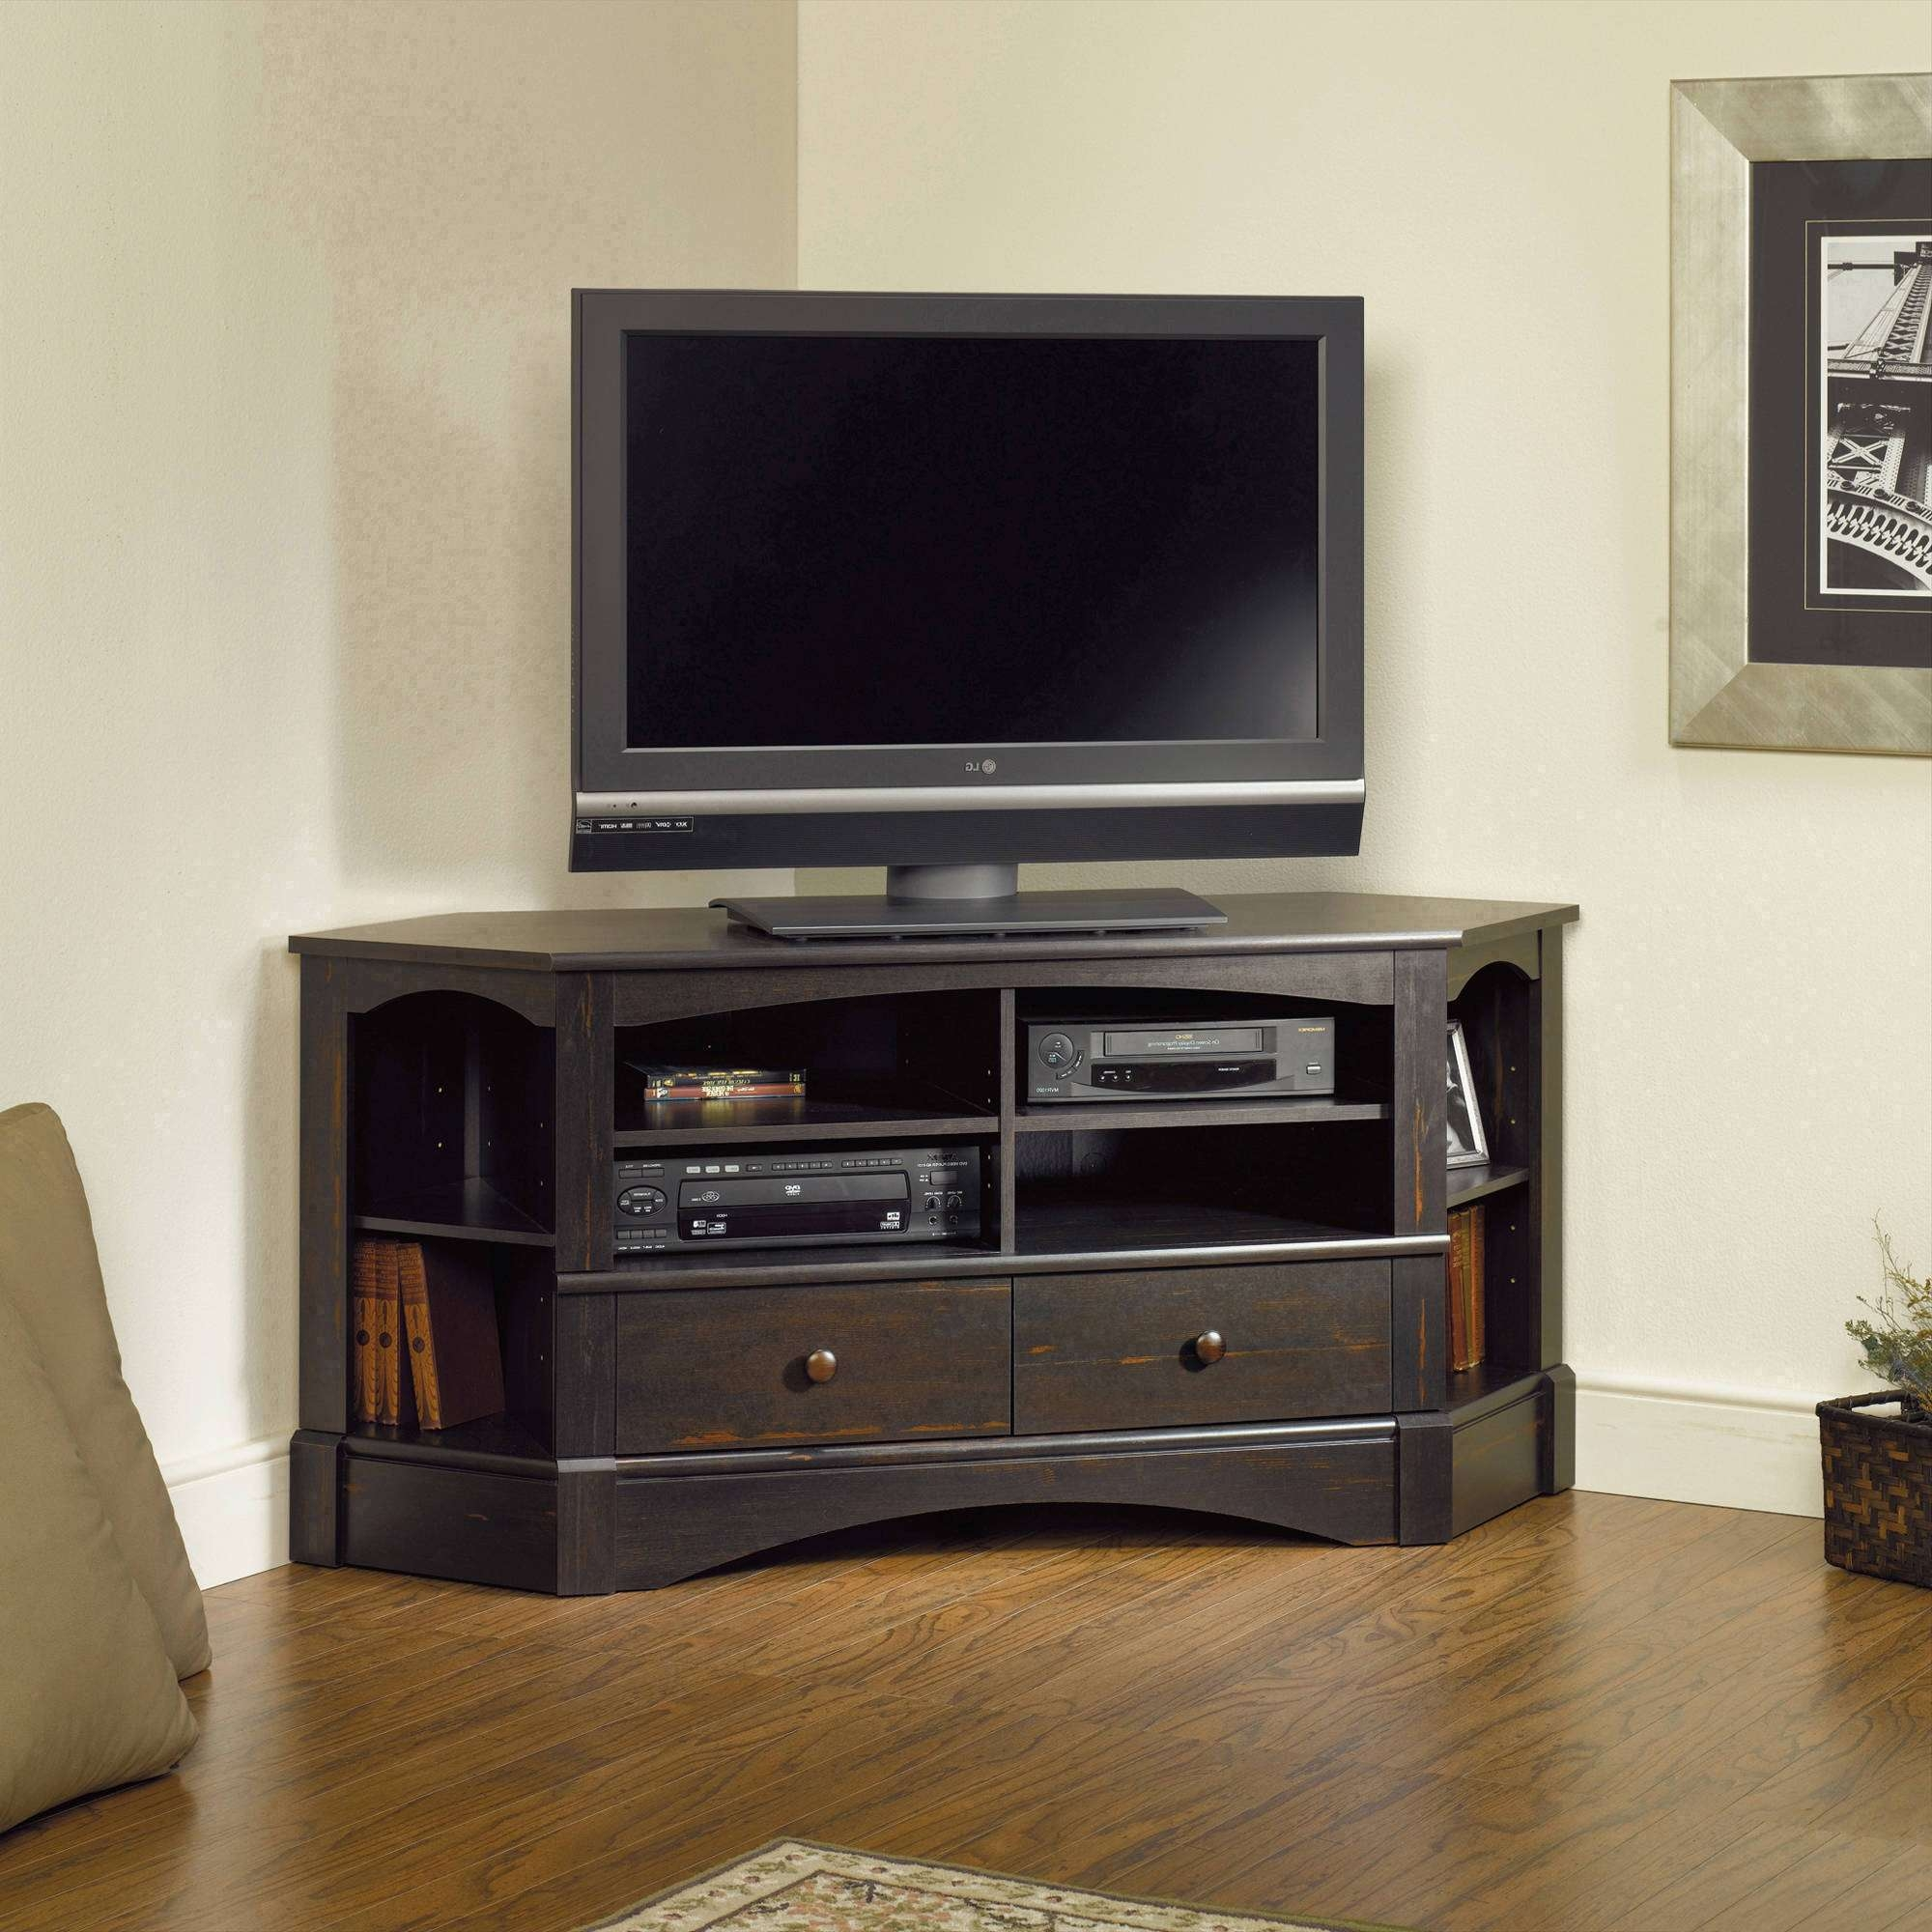 Great Triangle Tv Stand 12 For Your Home Decorating Ideas With Inside Triangle Tv Stands (View 6 of 15)